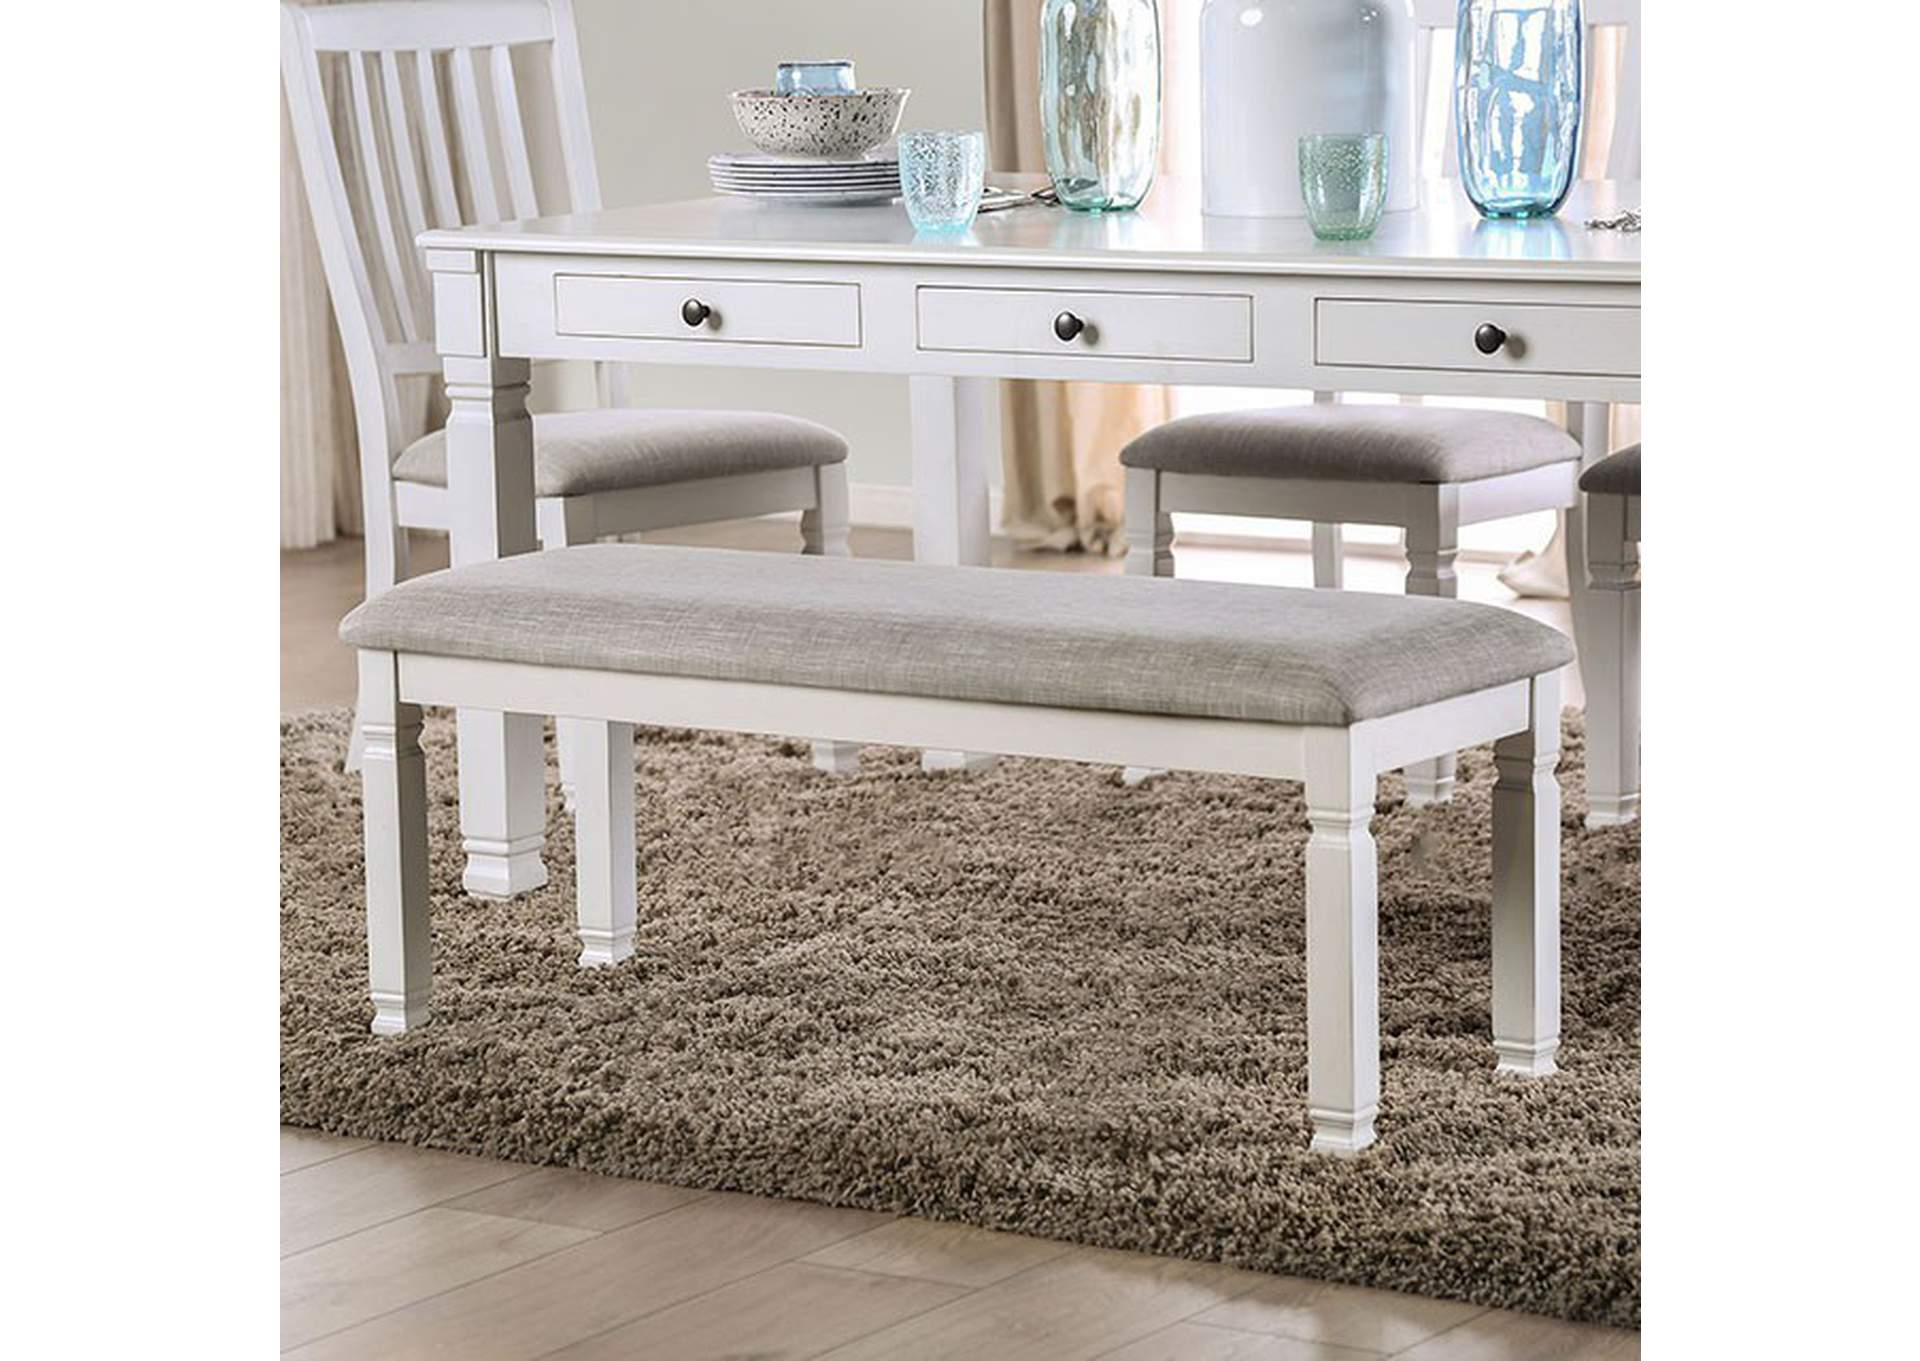 Kaliyah Antique White Upholstered Bench Best Buy Furniture And Mattress